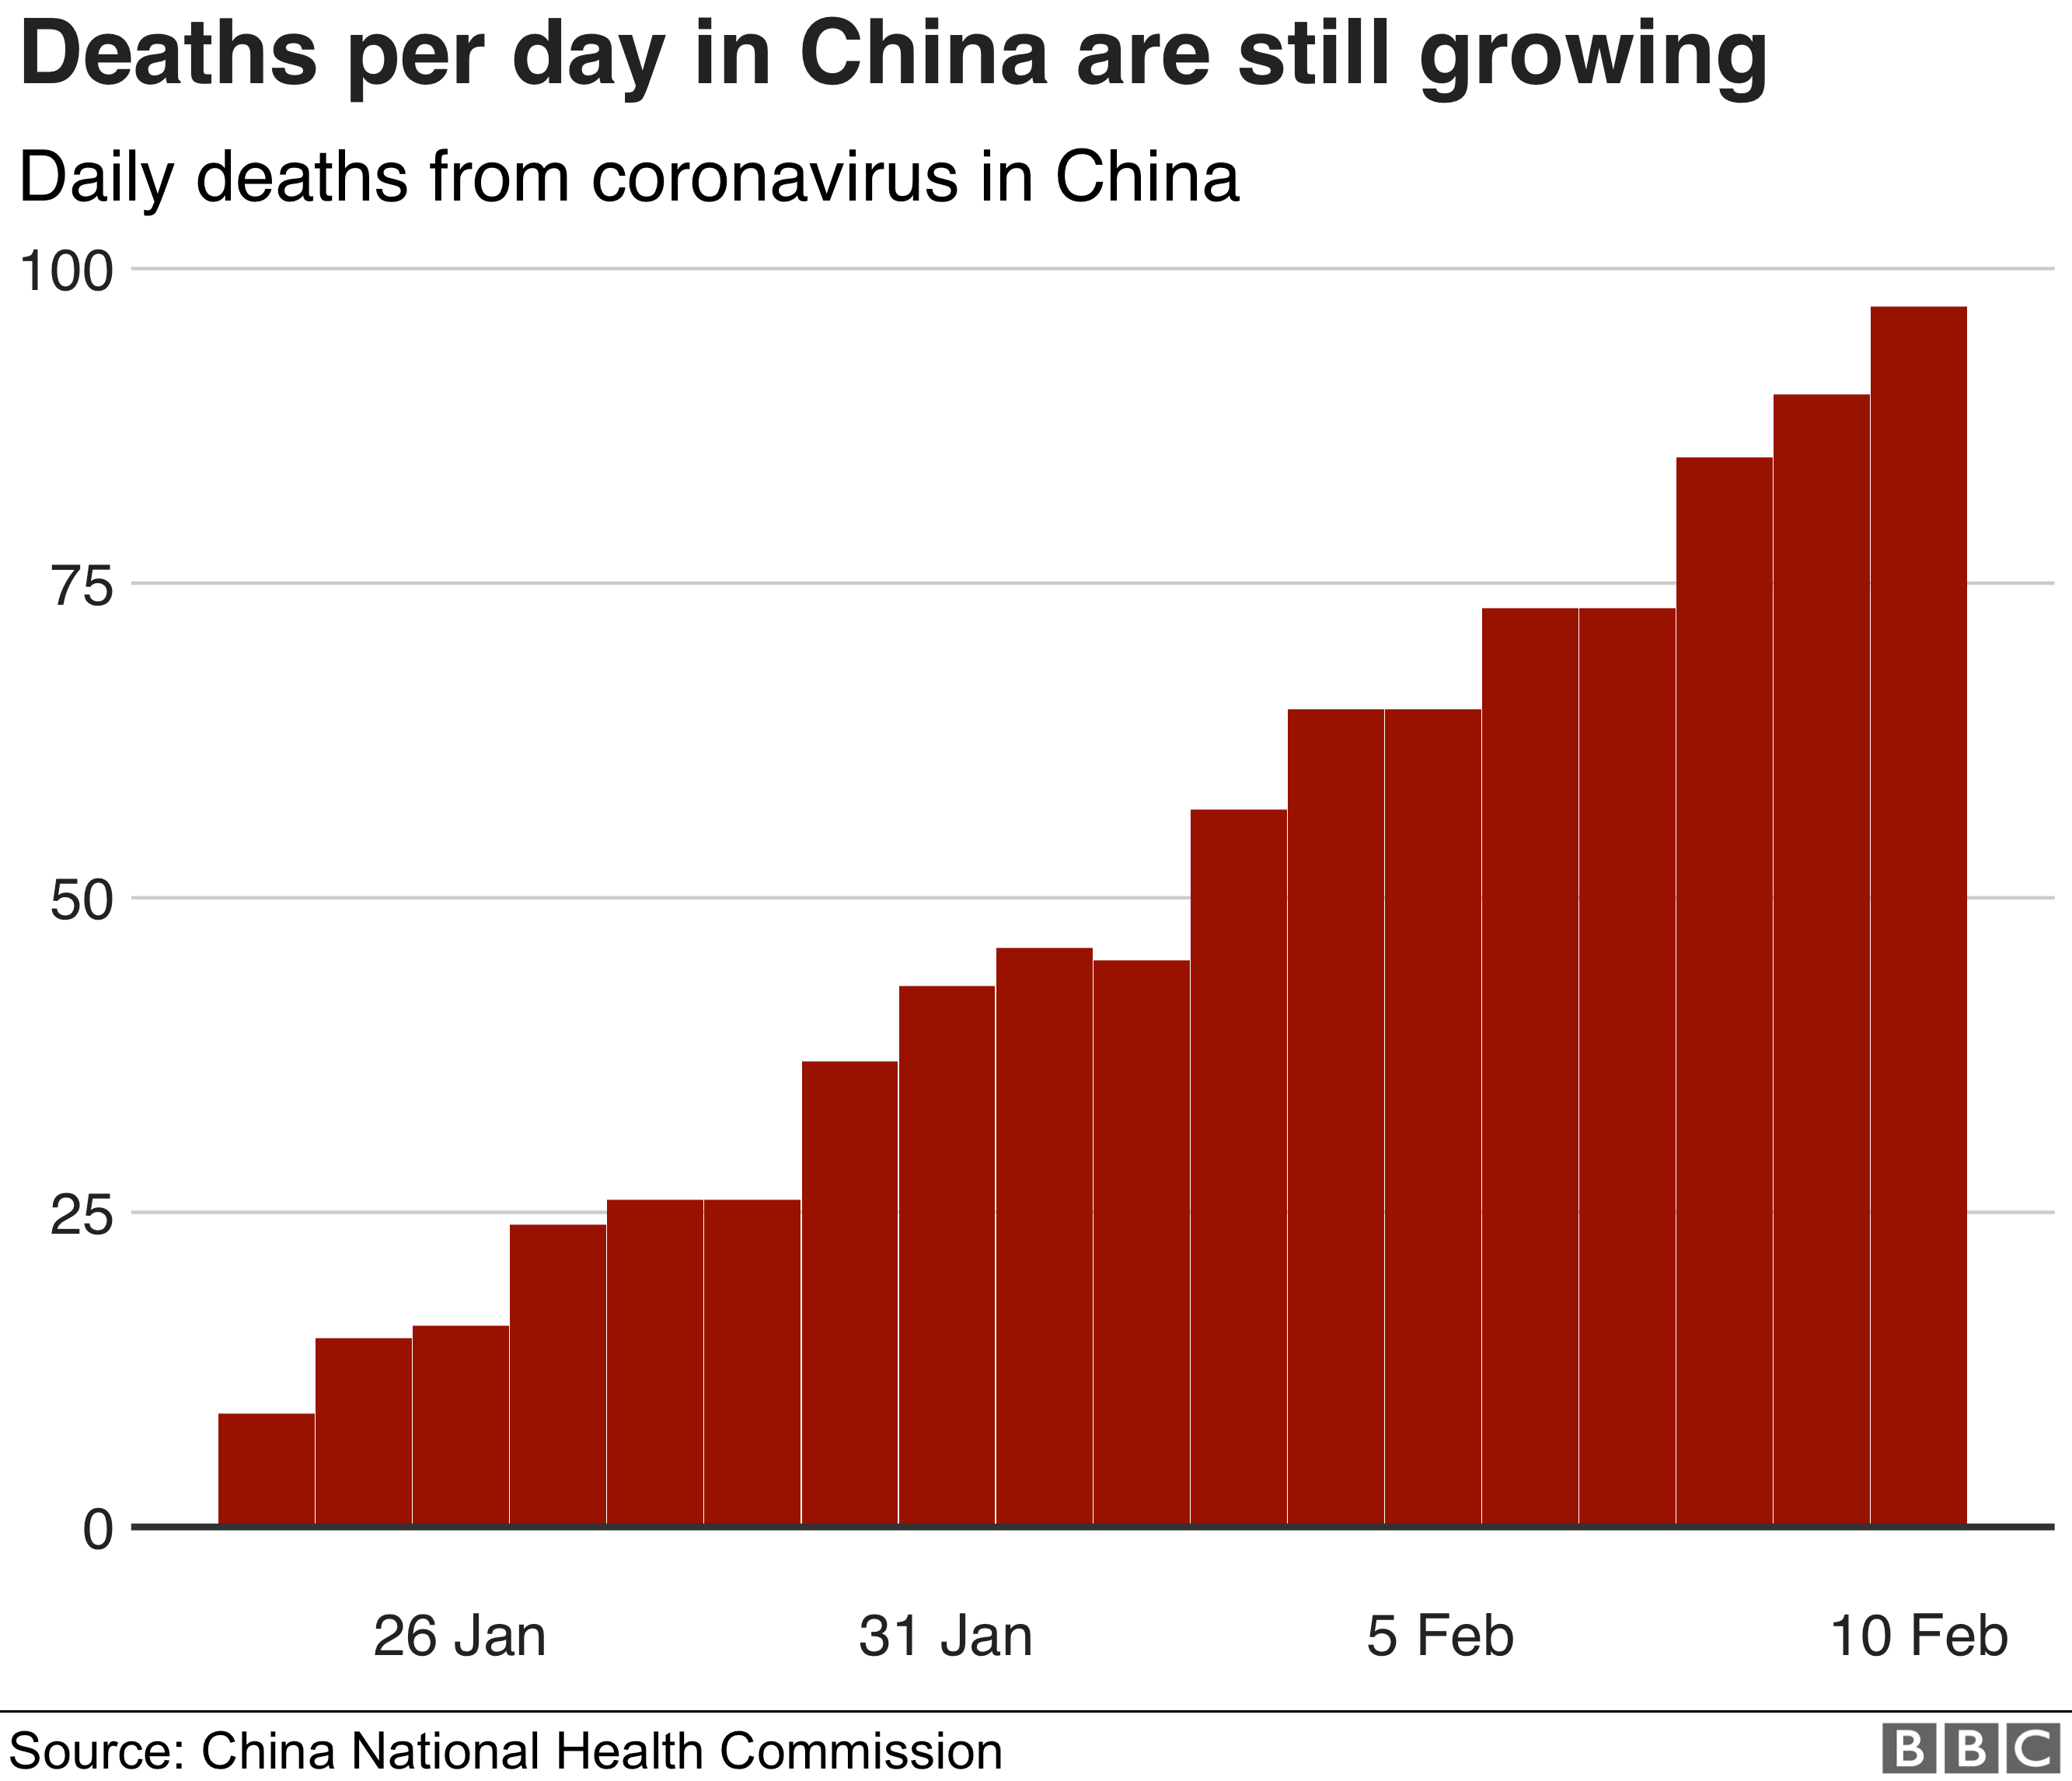 Chart showing how daily deaths from coronavirus in China are rising